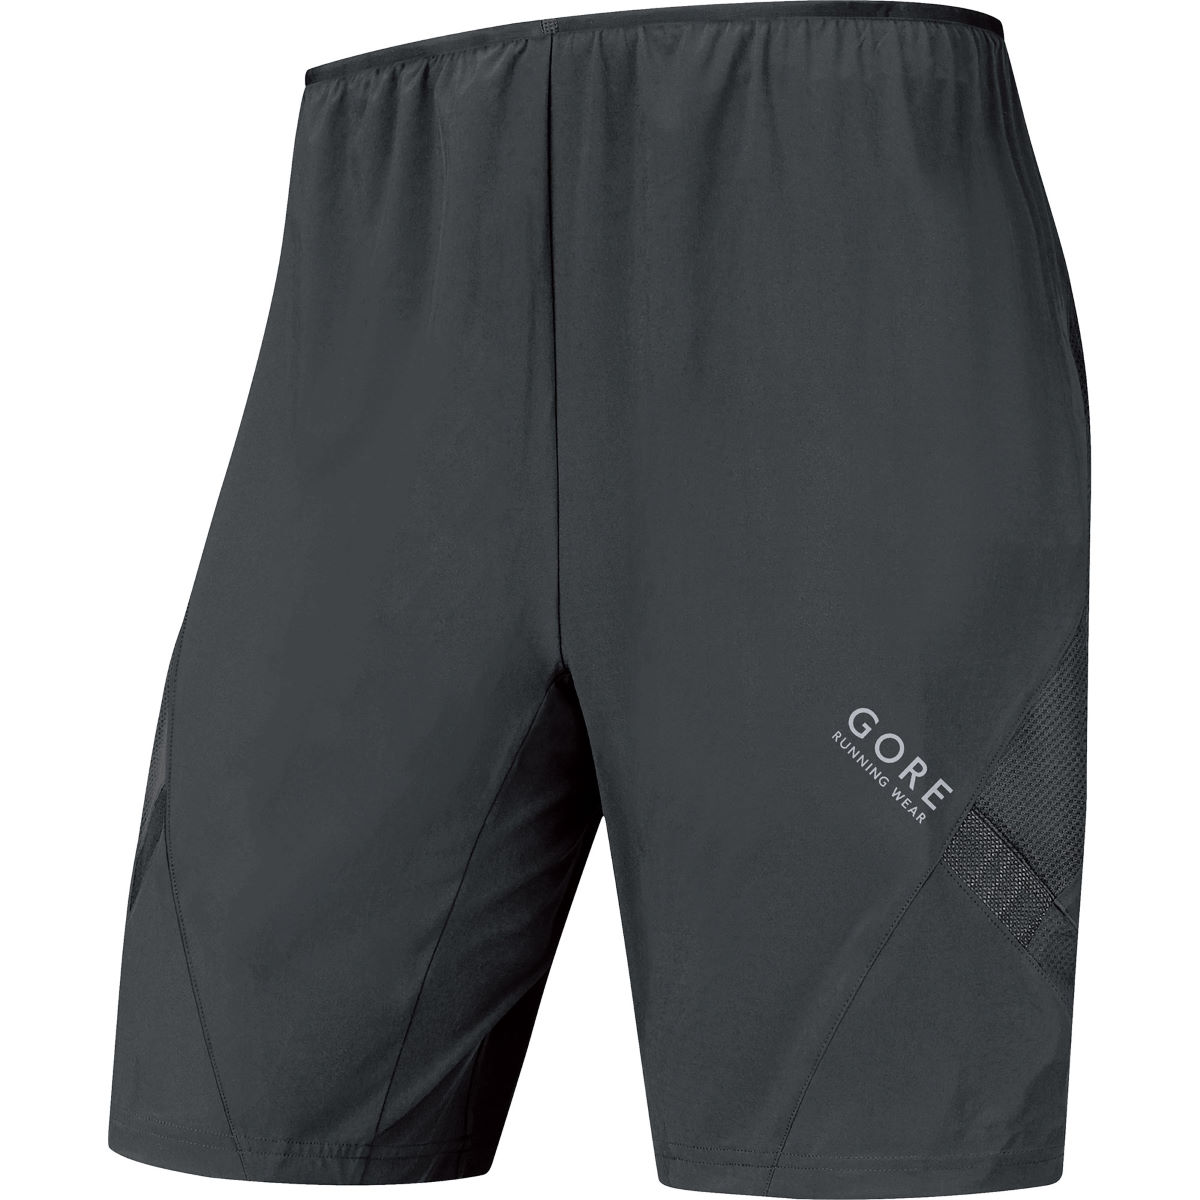 Gore Running Wear Air Shorts (2in1, AW16) - Small Black